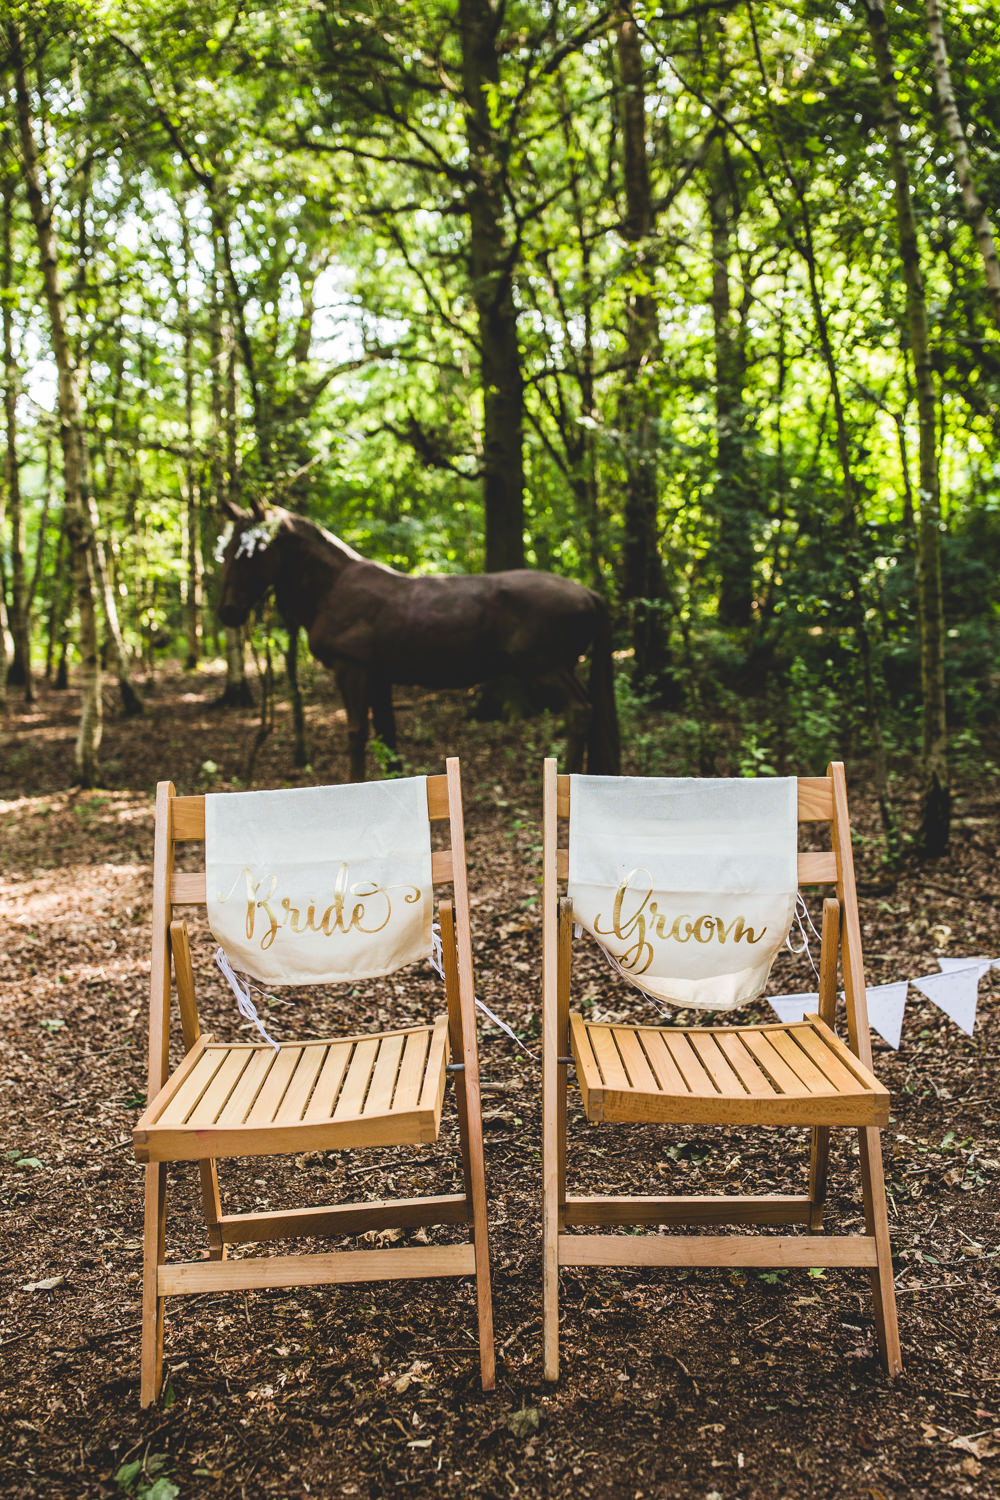 Bride Groom Seat Chair Back Wise Wedding Venue Livvy Hukins Photography